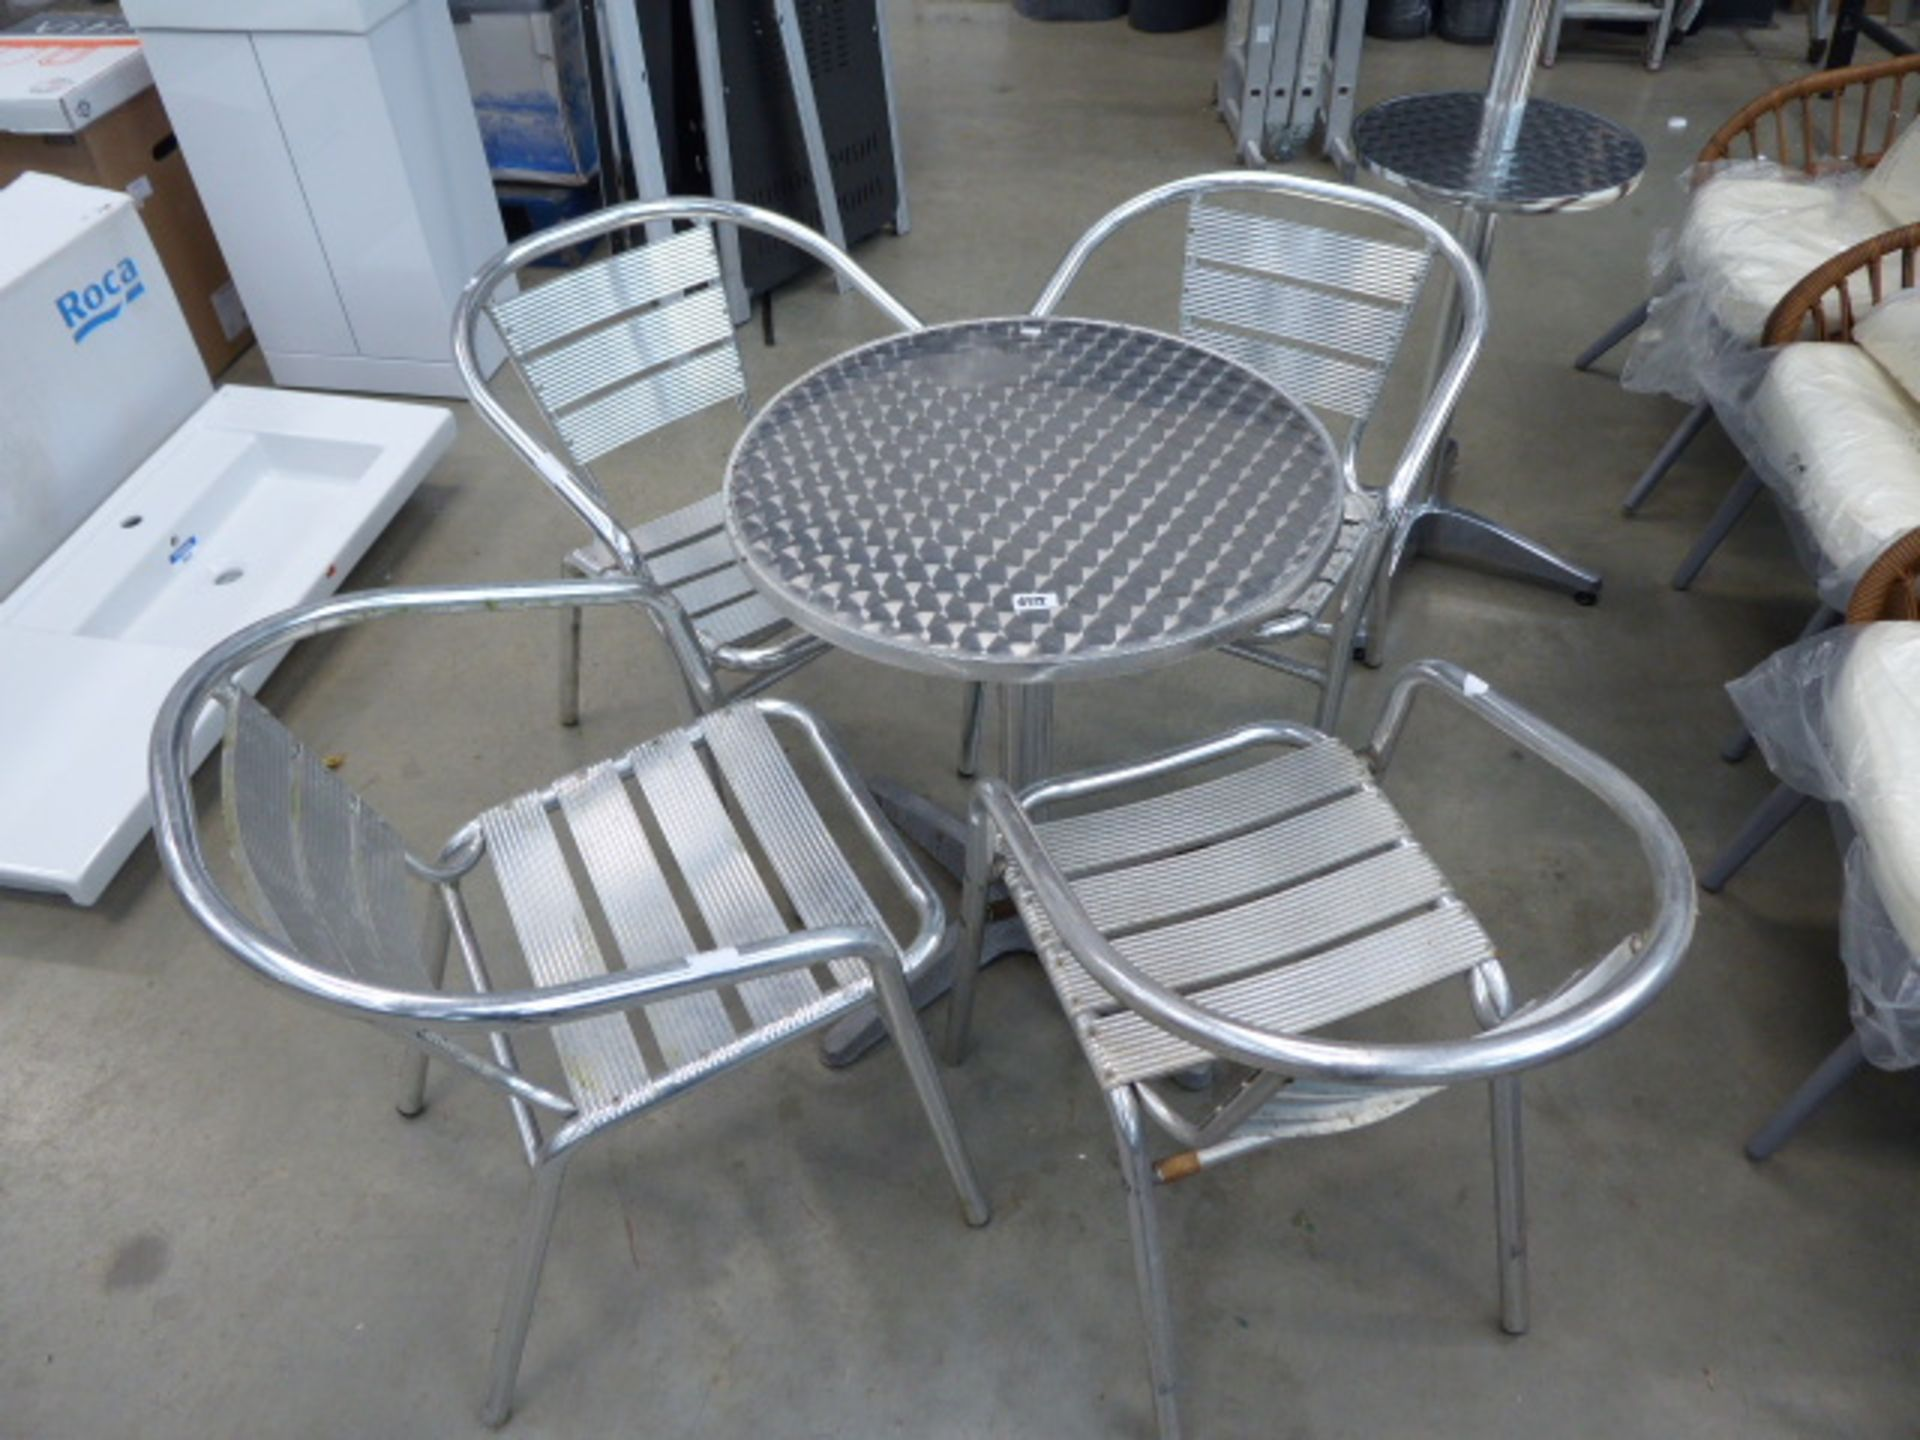 Lot 4172 - Small silver bistro table with 4 chairs